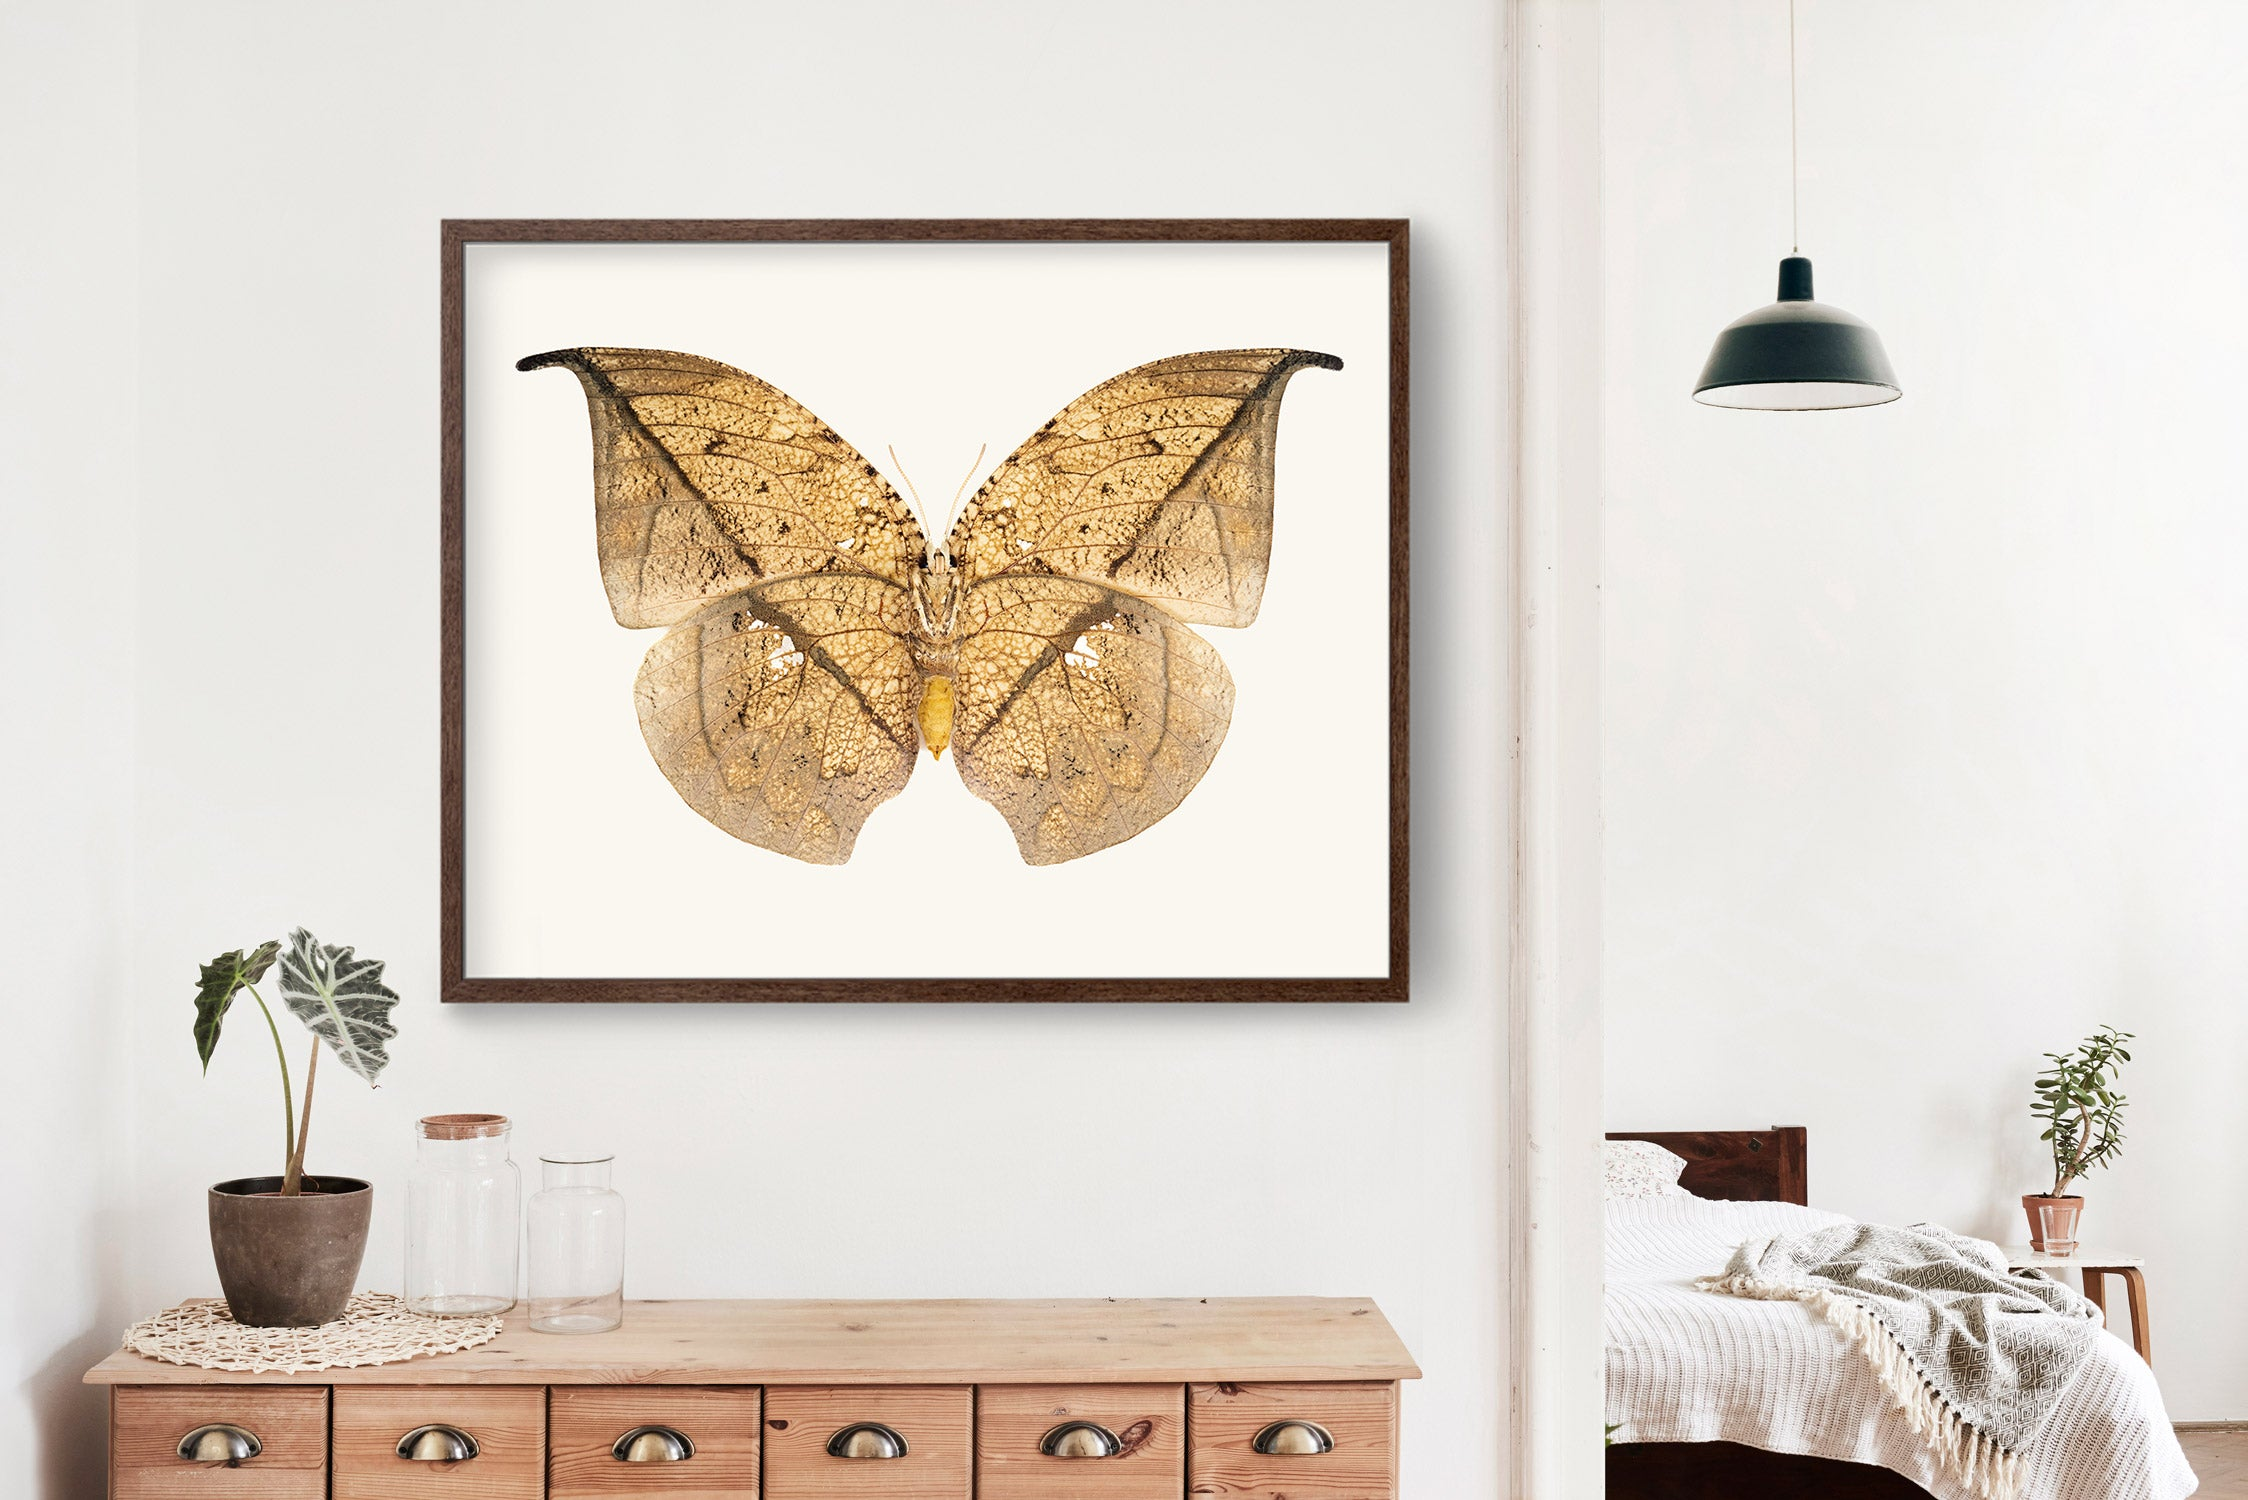 Butterfly No. 11 - the Leafwing Butterfly